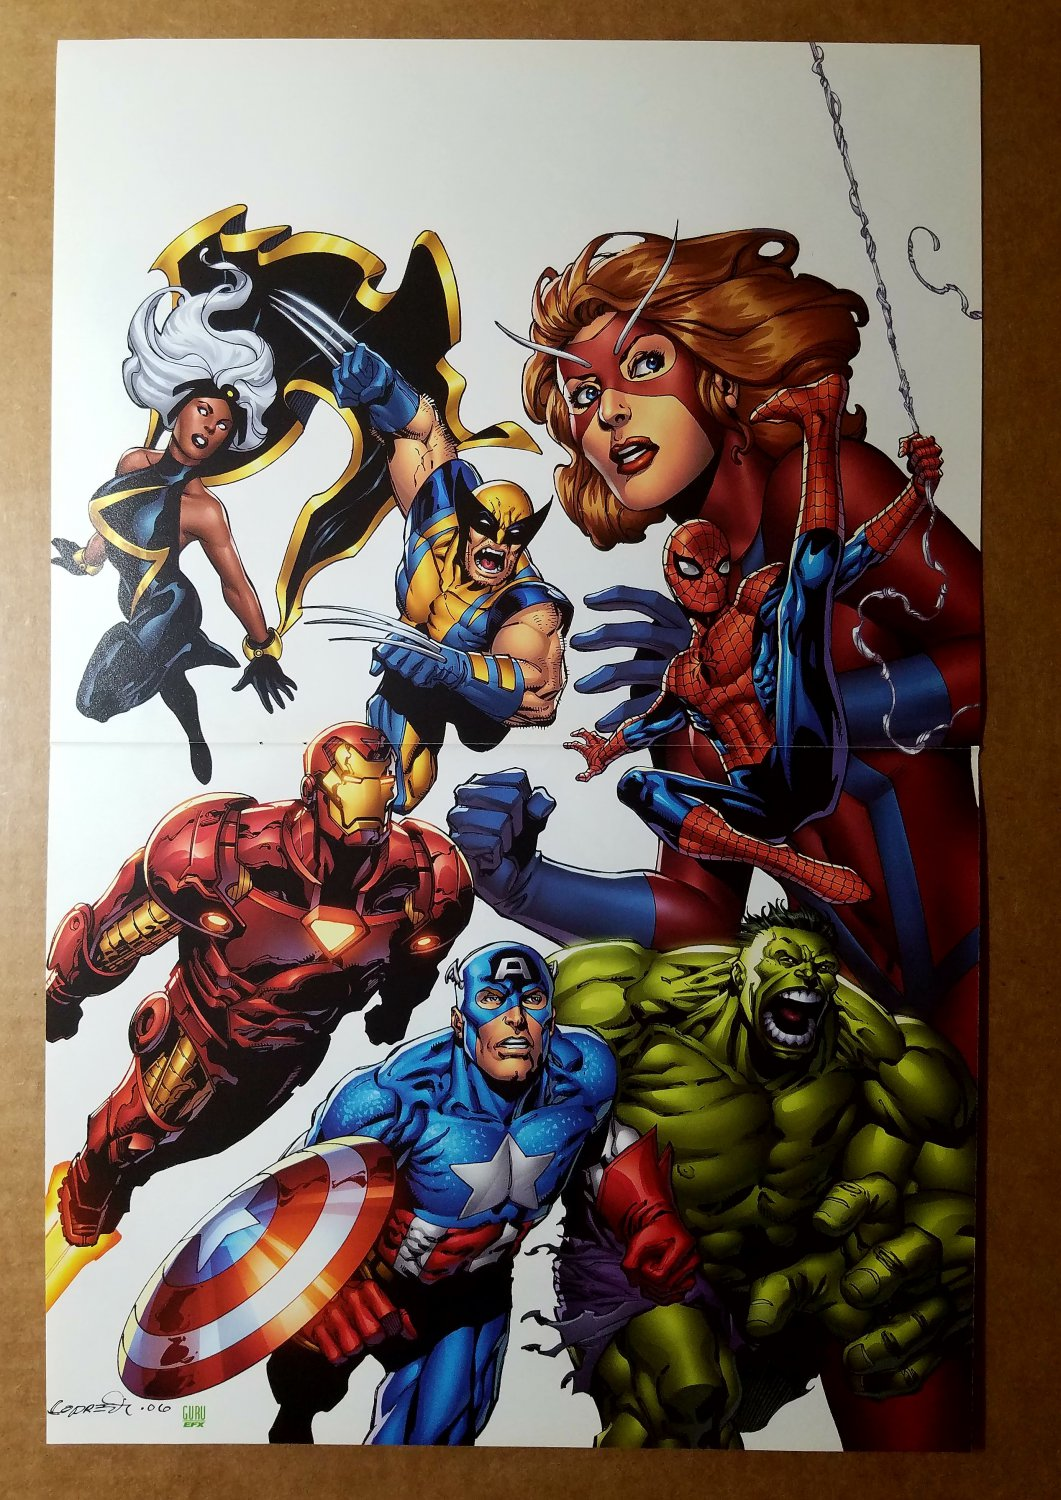 Avengers Wolverine Storm Captain America Marvel Comics Poster by Aaron Lopresti